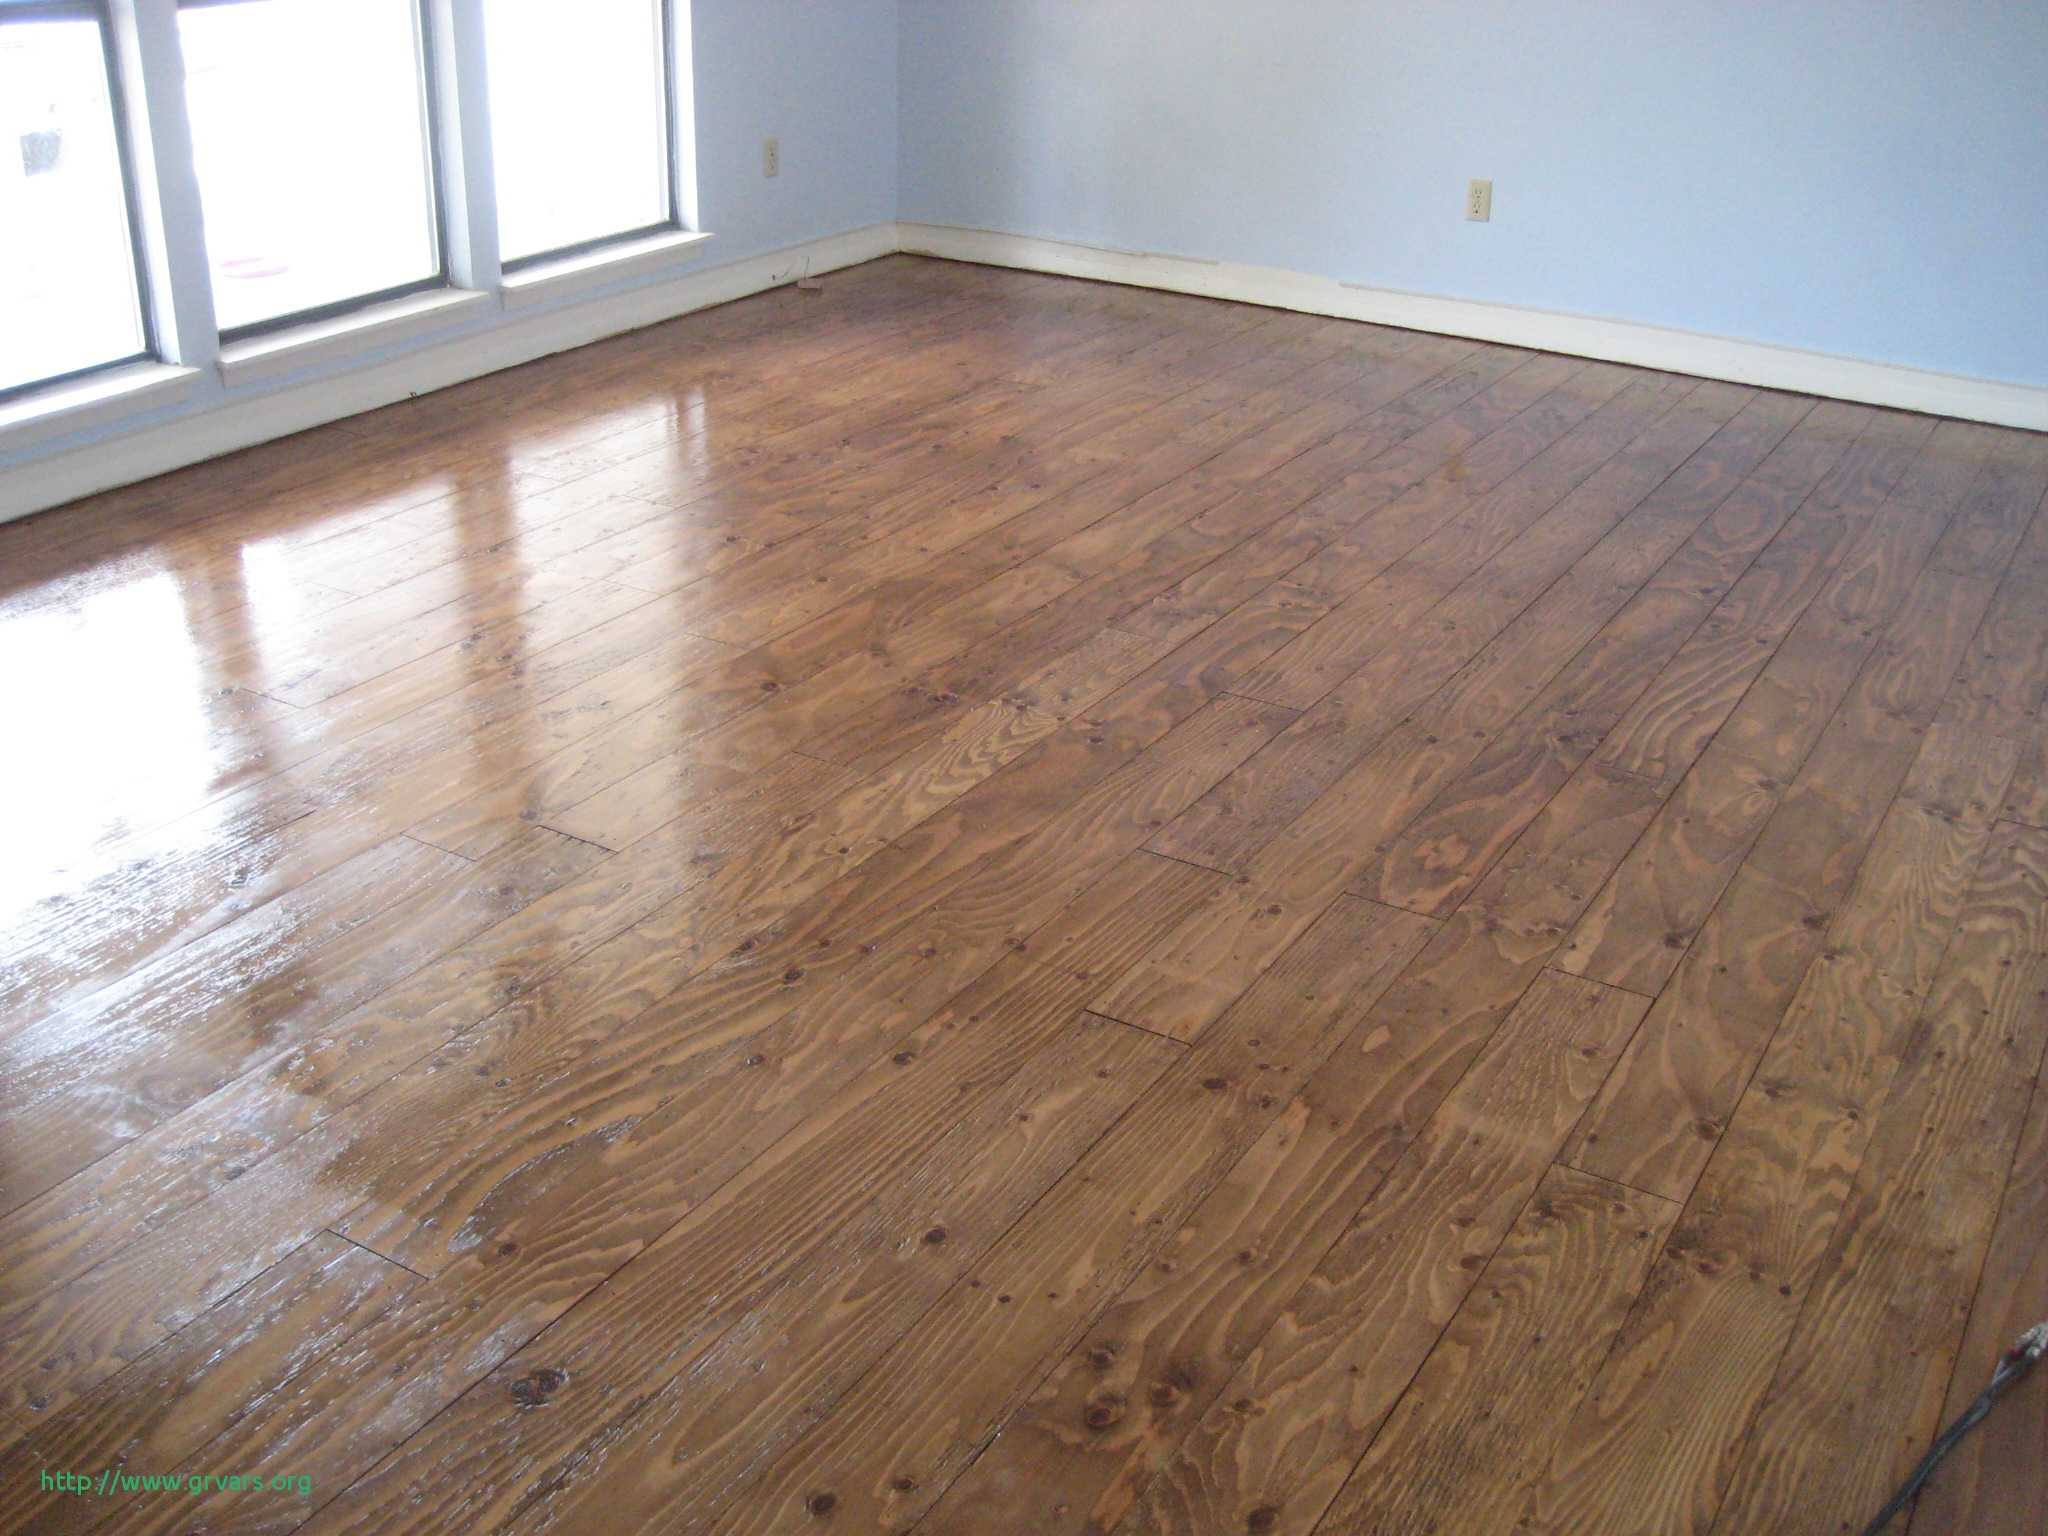 Staining Hardwood Floors Lighter Of How to Make Hardwood Floors Darker Beau Marvelloust Wood Floors Intended for How to Make Hardwood Floors Darker Beau Marvelloust Wood Floors Colors for Finished Basement with Decobizz